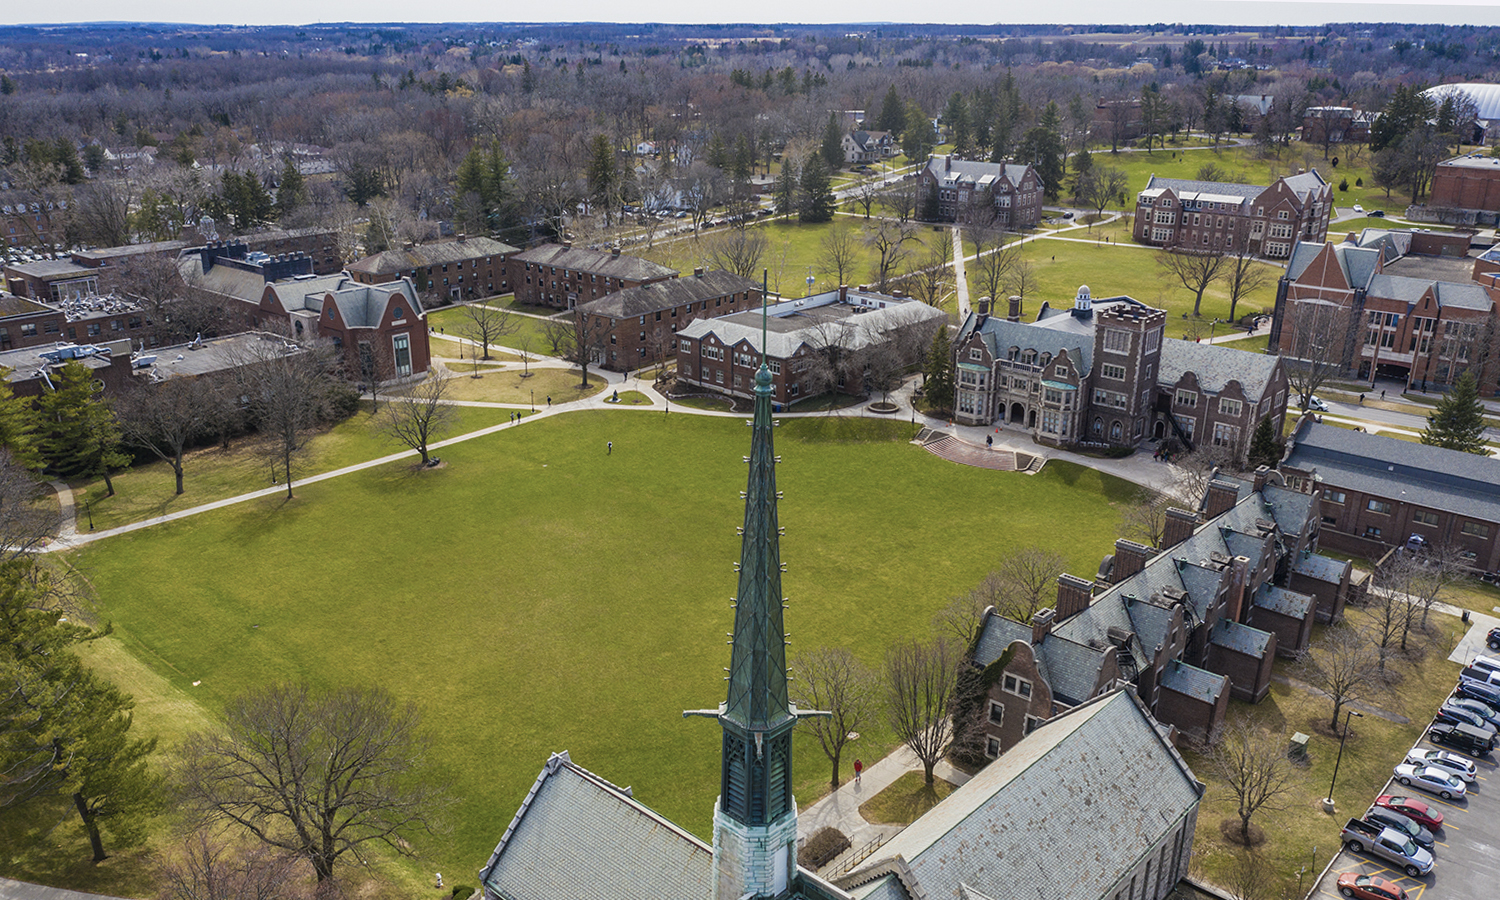 The Quad as seen from above, with the tower of St. John's Chapel in the foreground.